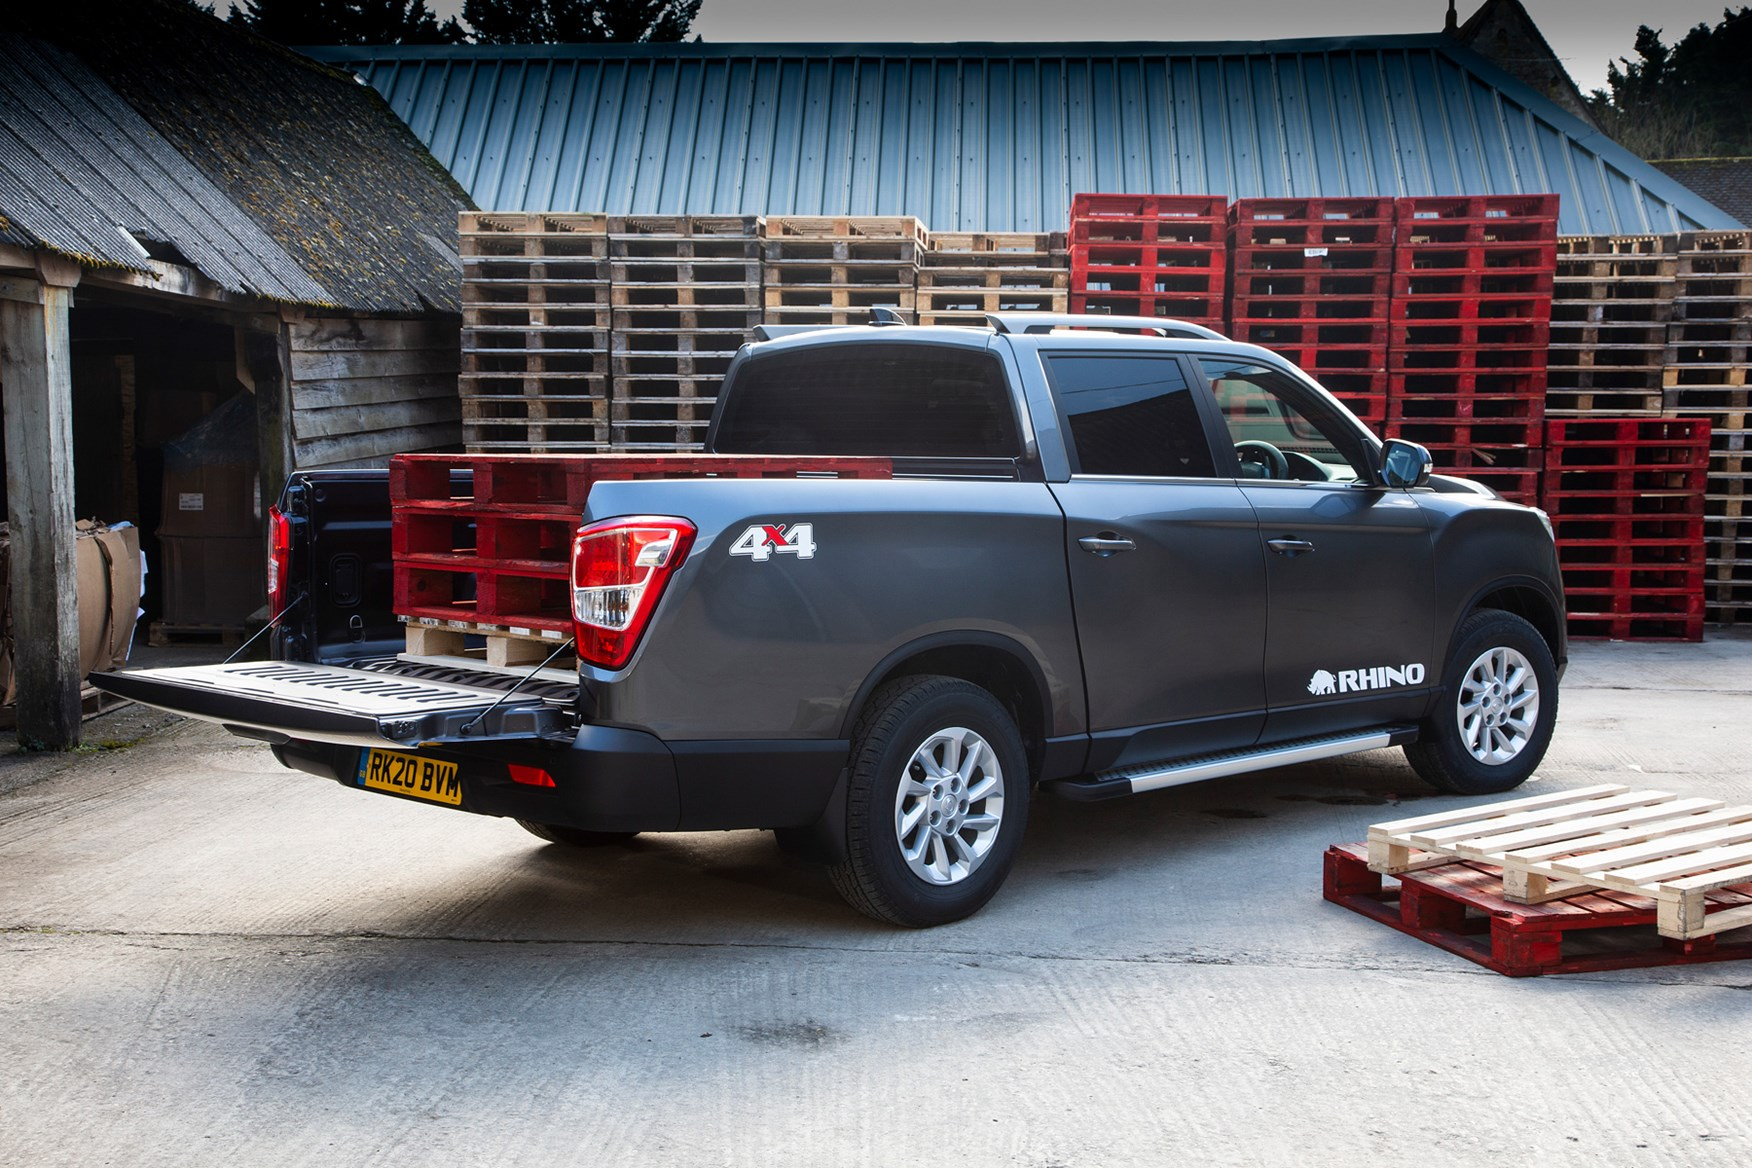 SsangYong Musso review, 2020, Rhino LWB, rear view with pallets